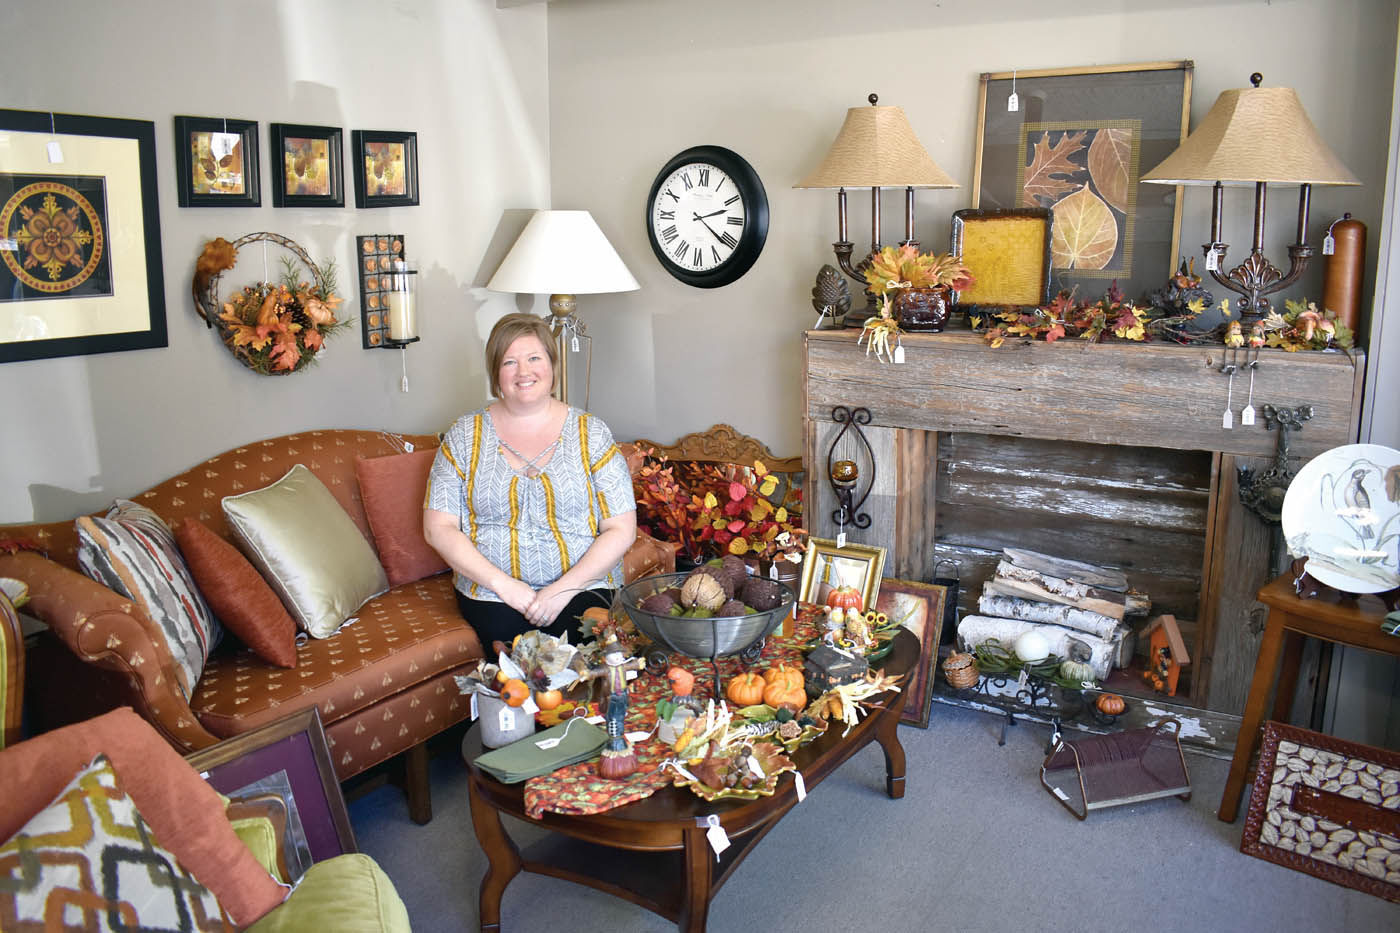 Kala Linder Has Been The New Owner Of The Rustique Consignment Store In  Downtown Owatonna For One Month, Helping People Sell Items And Clothes They  No ...